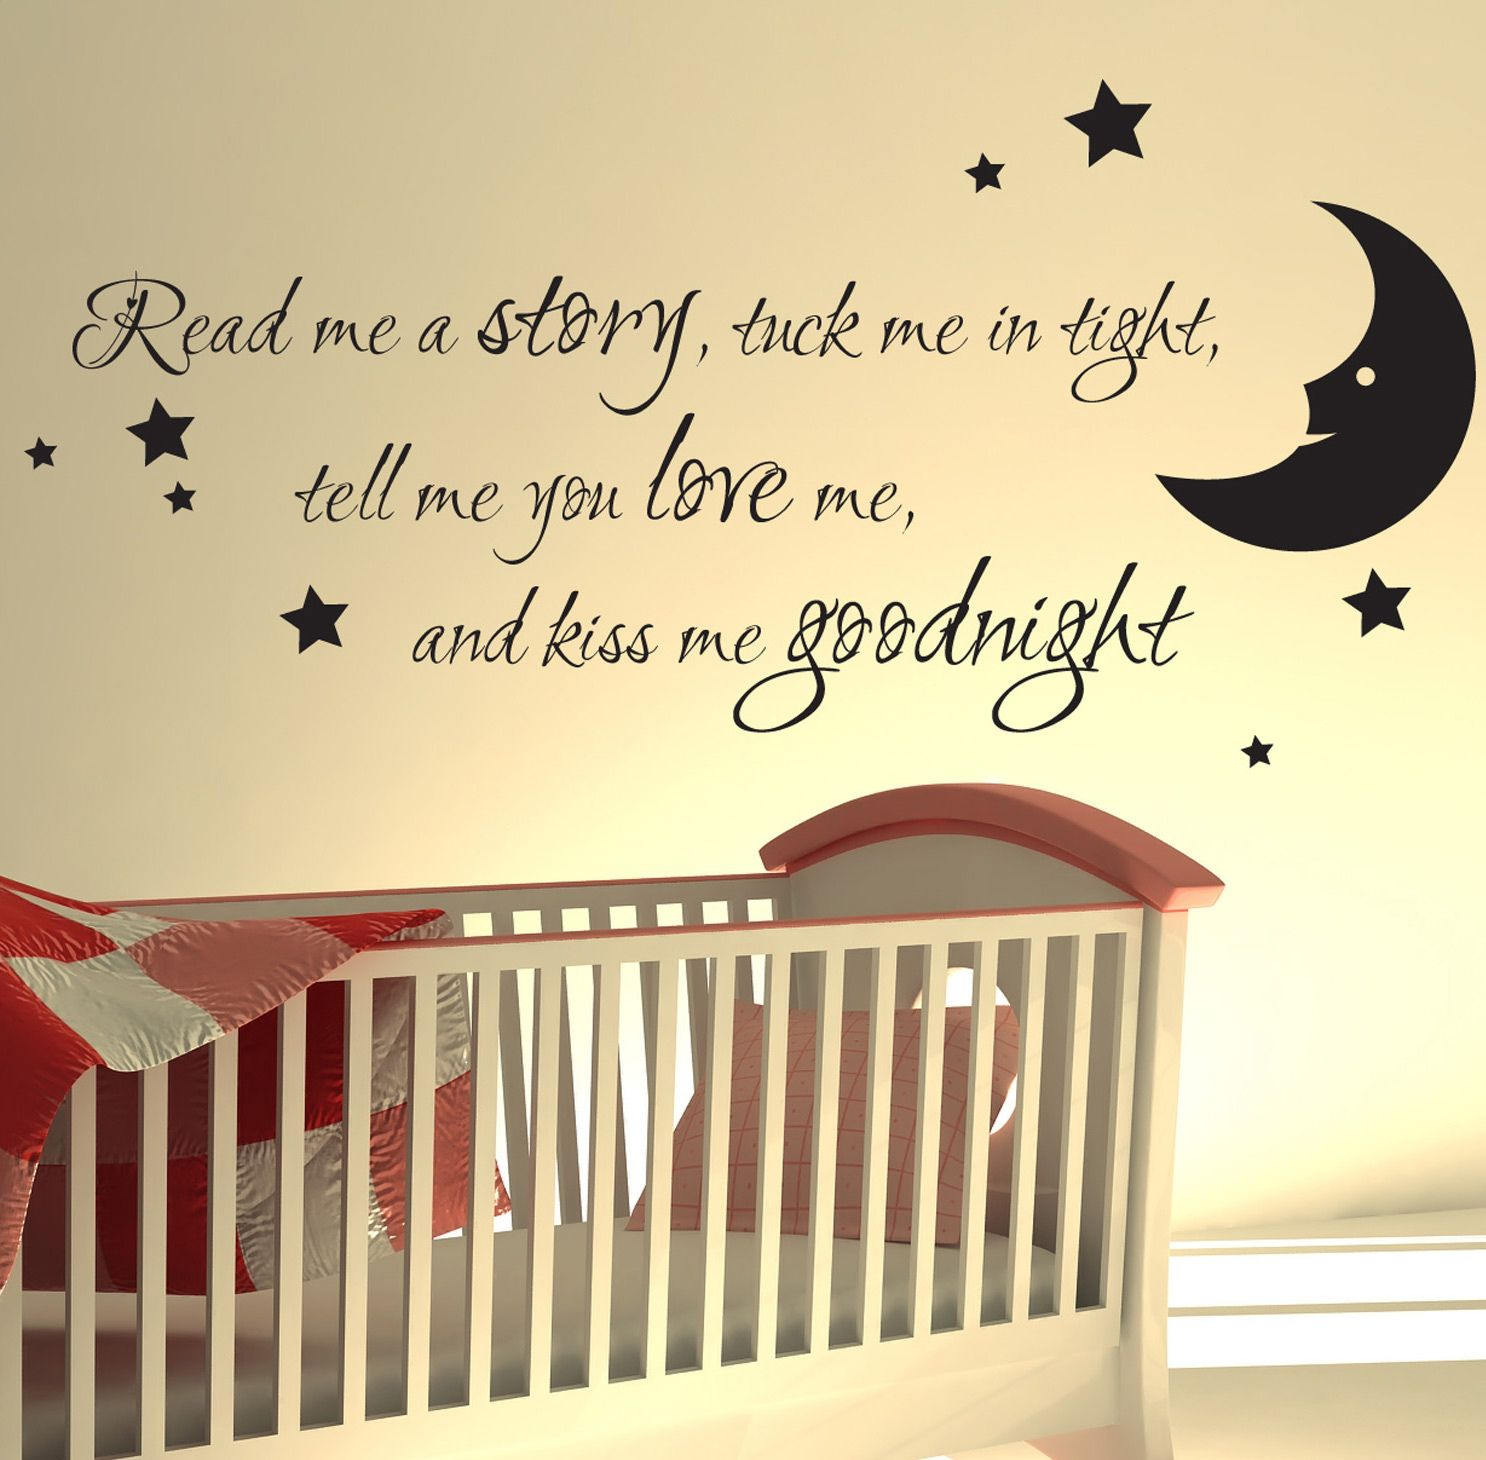 77+ Baby Room Wall Art Stickers - Ideas for Decorating A Bedroom ...